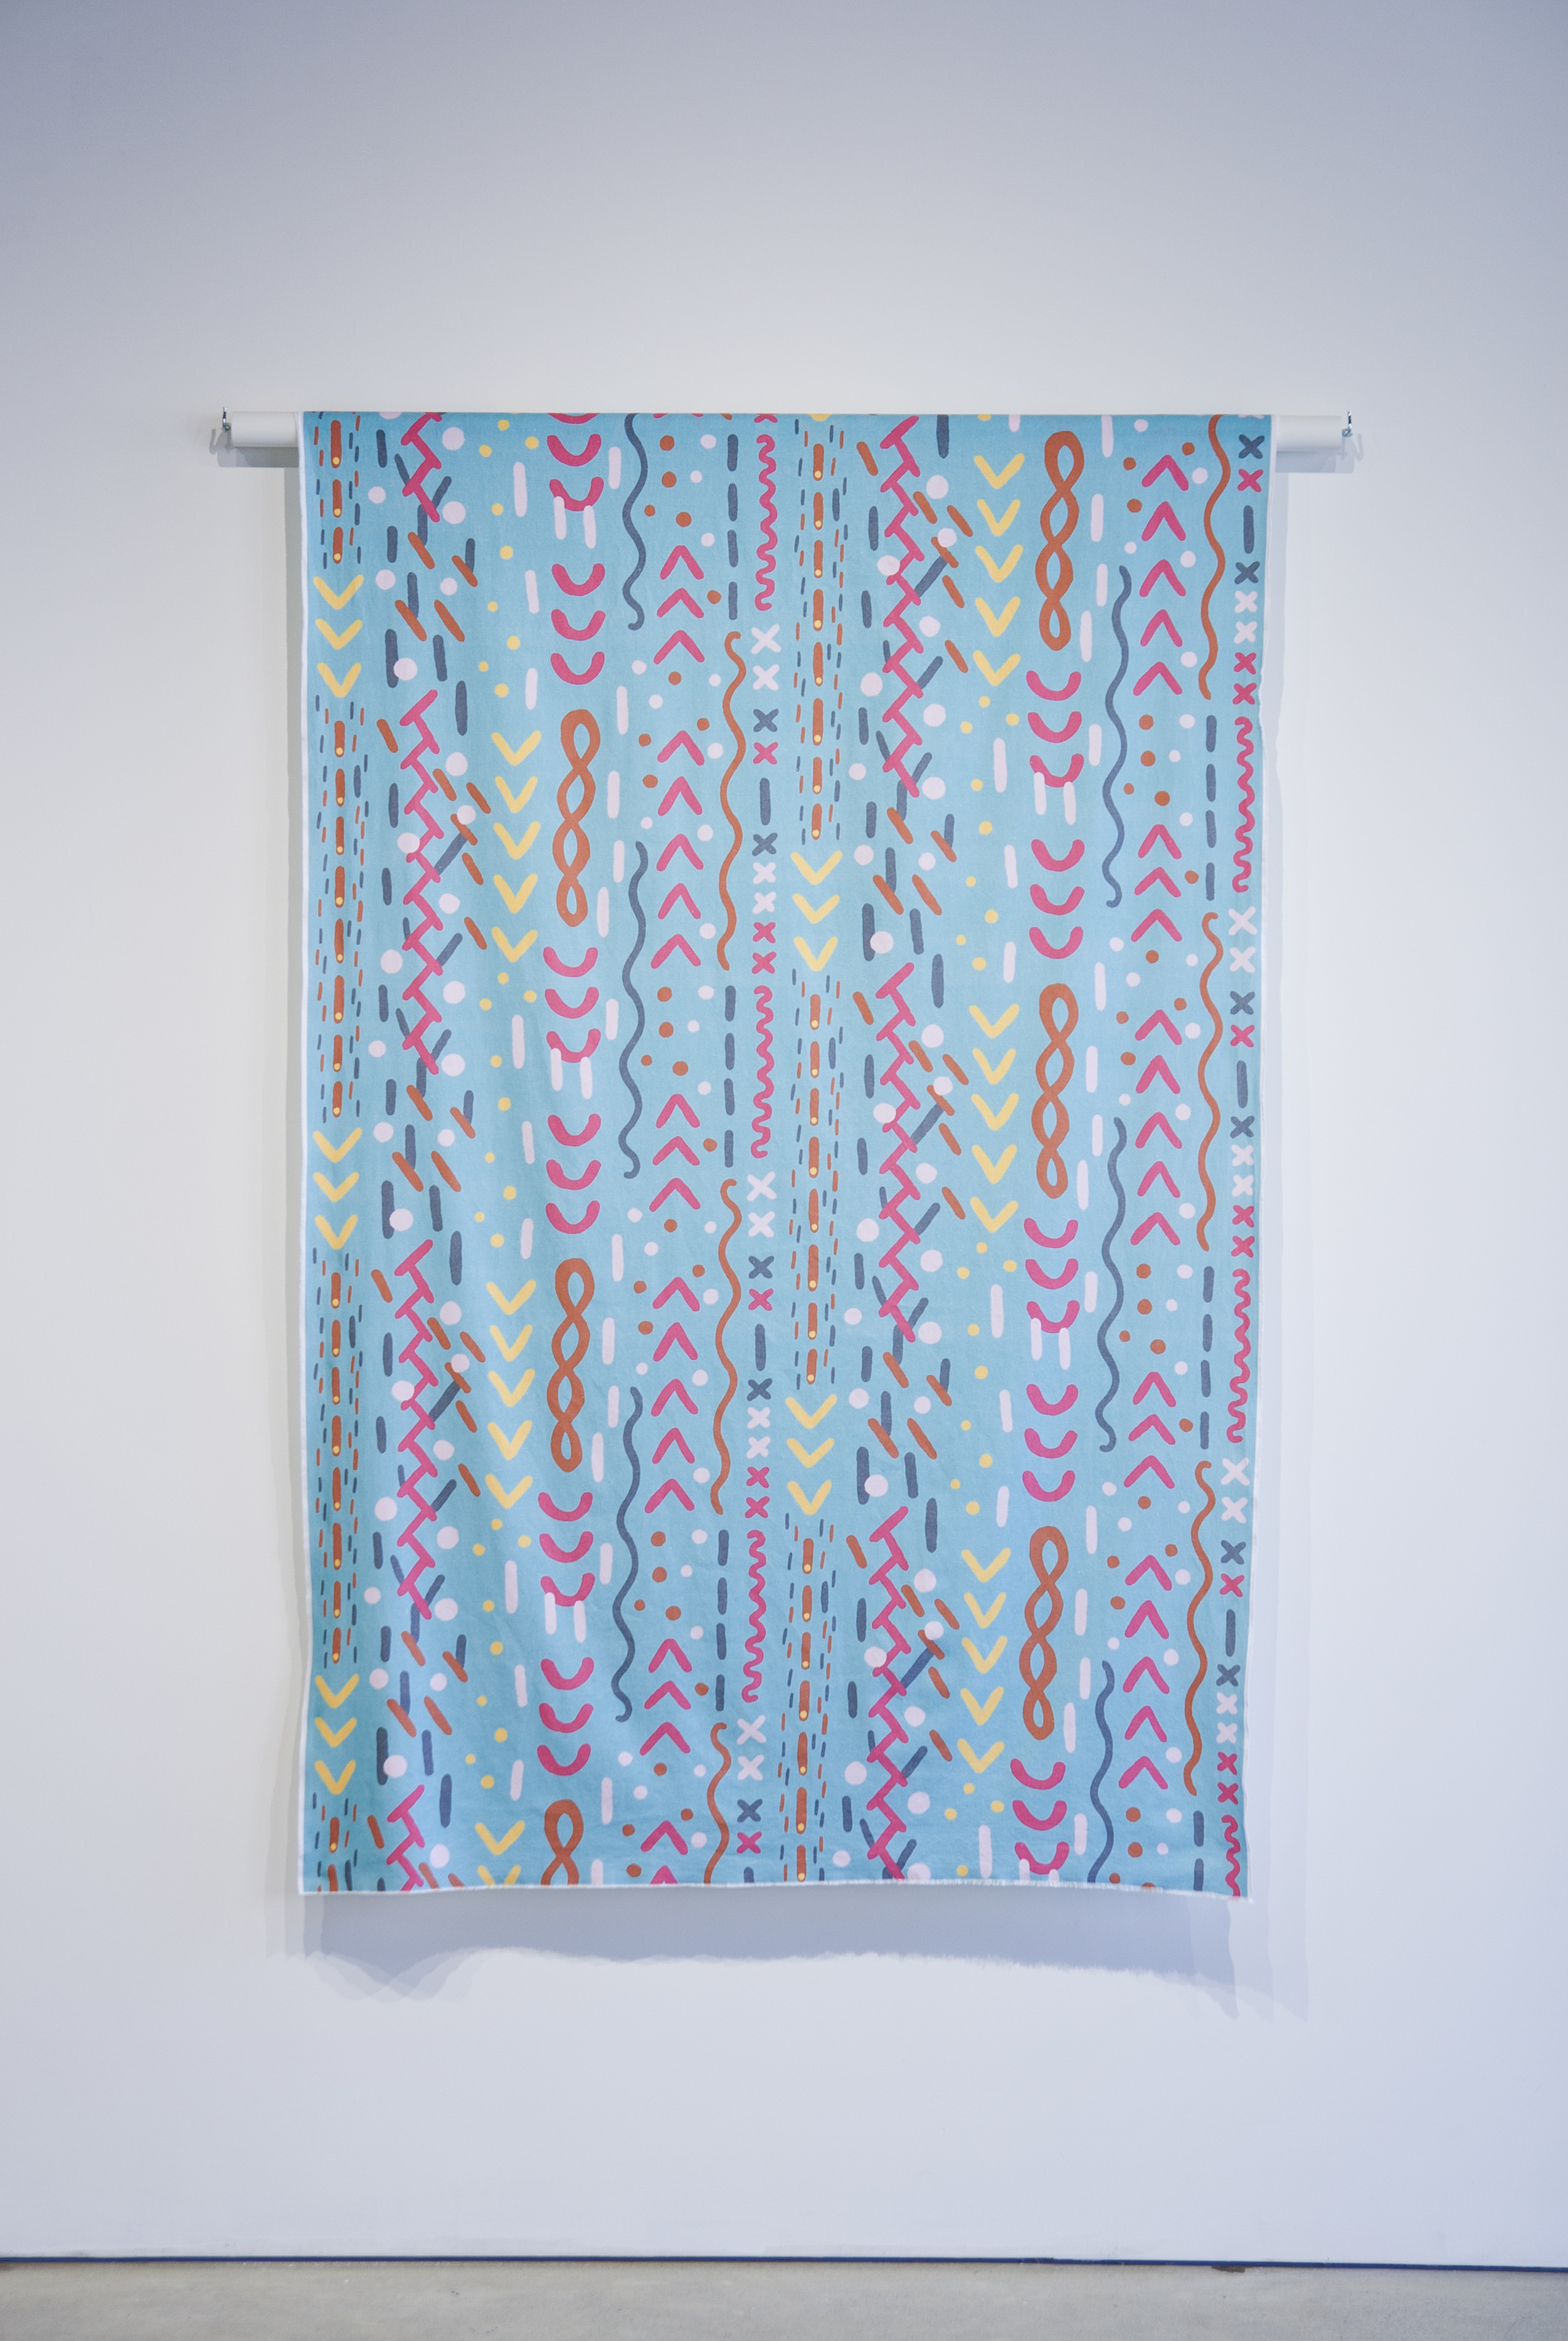 Stitches Fabric,  2015,mixed media,183 x 122 x 5 cm (72 x 48 x 2 in) variable